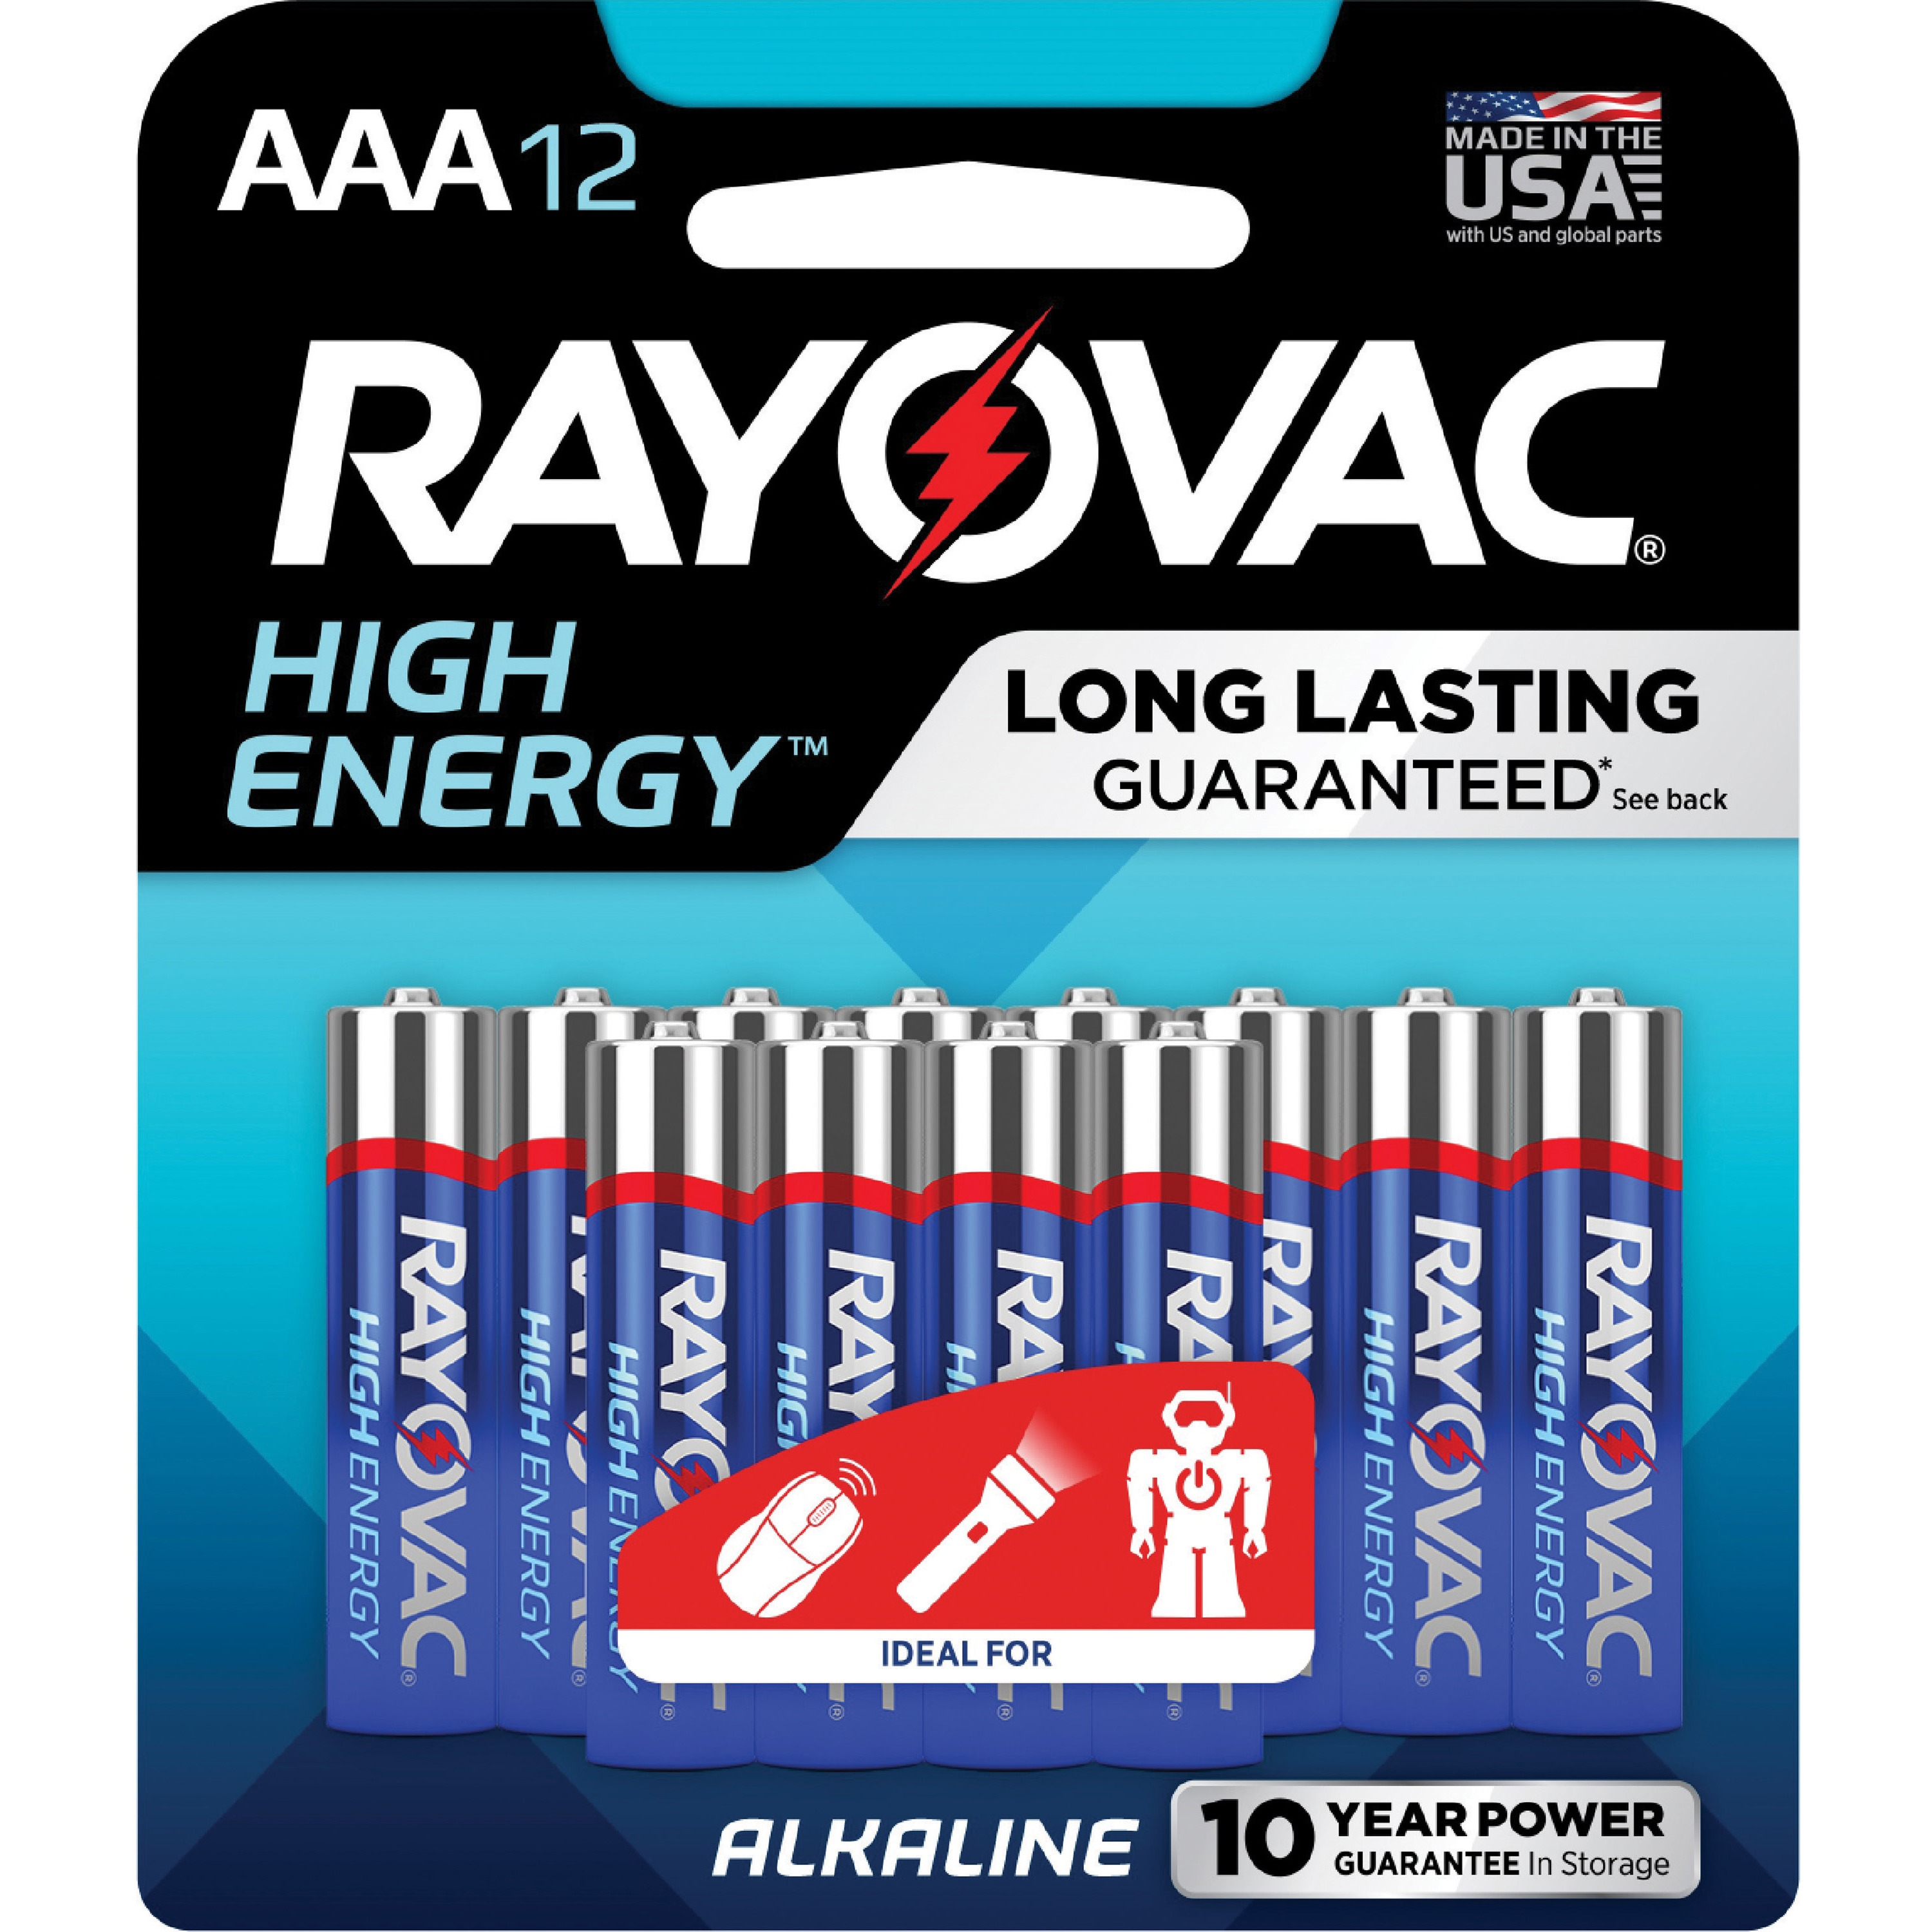 Rayovac Alkaline AAA Batteries, 12 ct